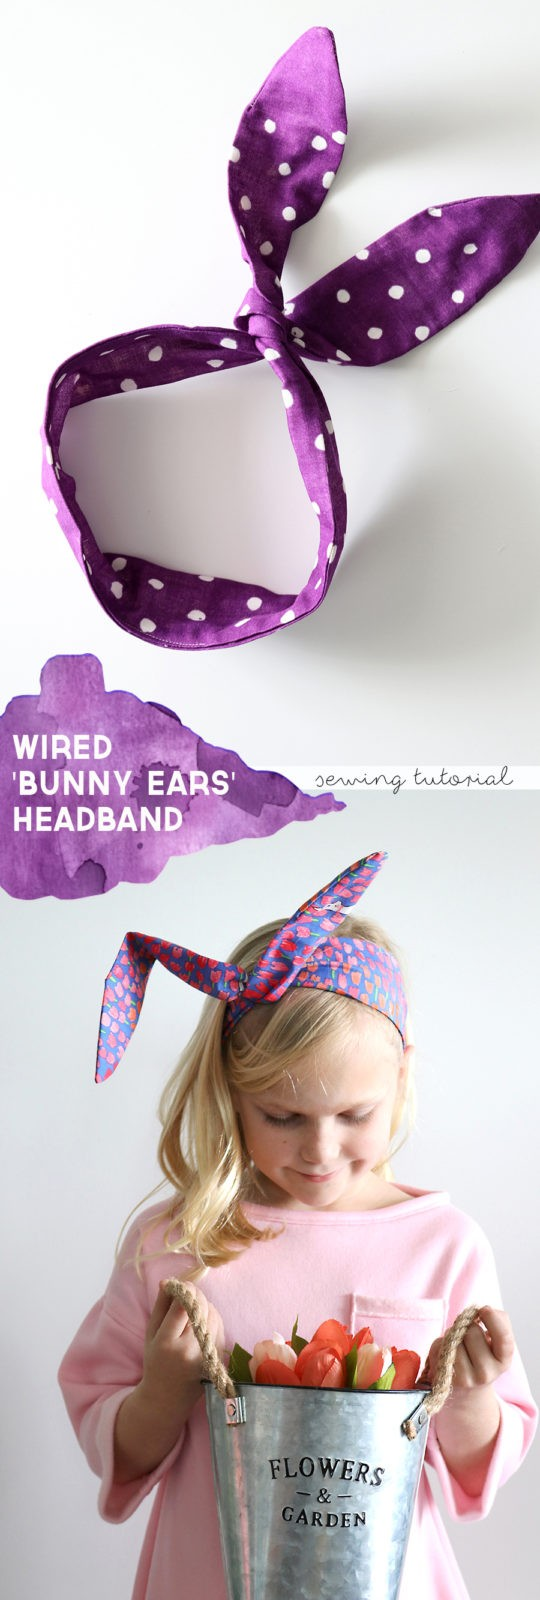 Wired Bunny Ears Headband The Sewing Rabbit